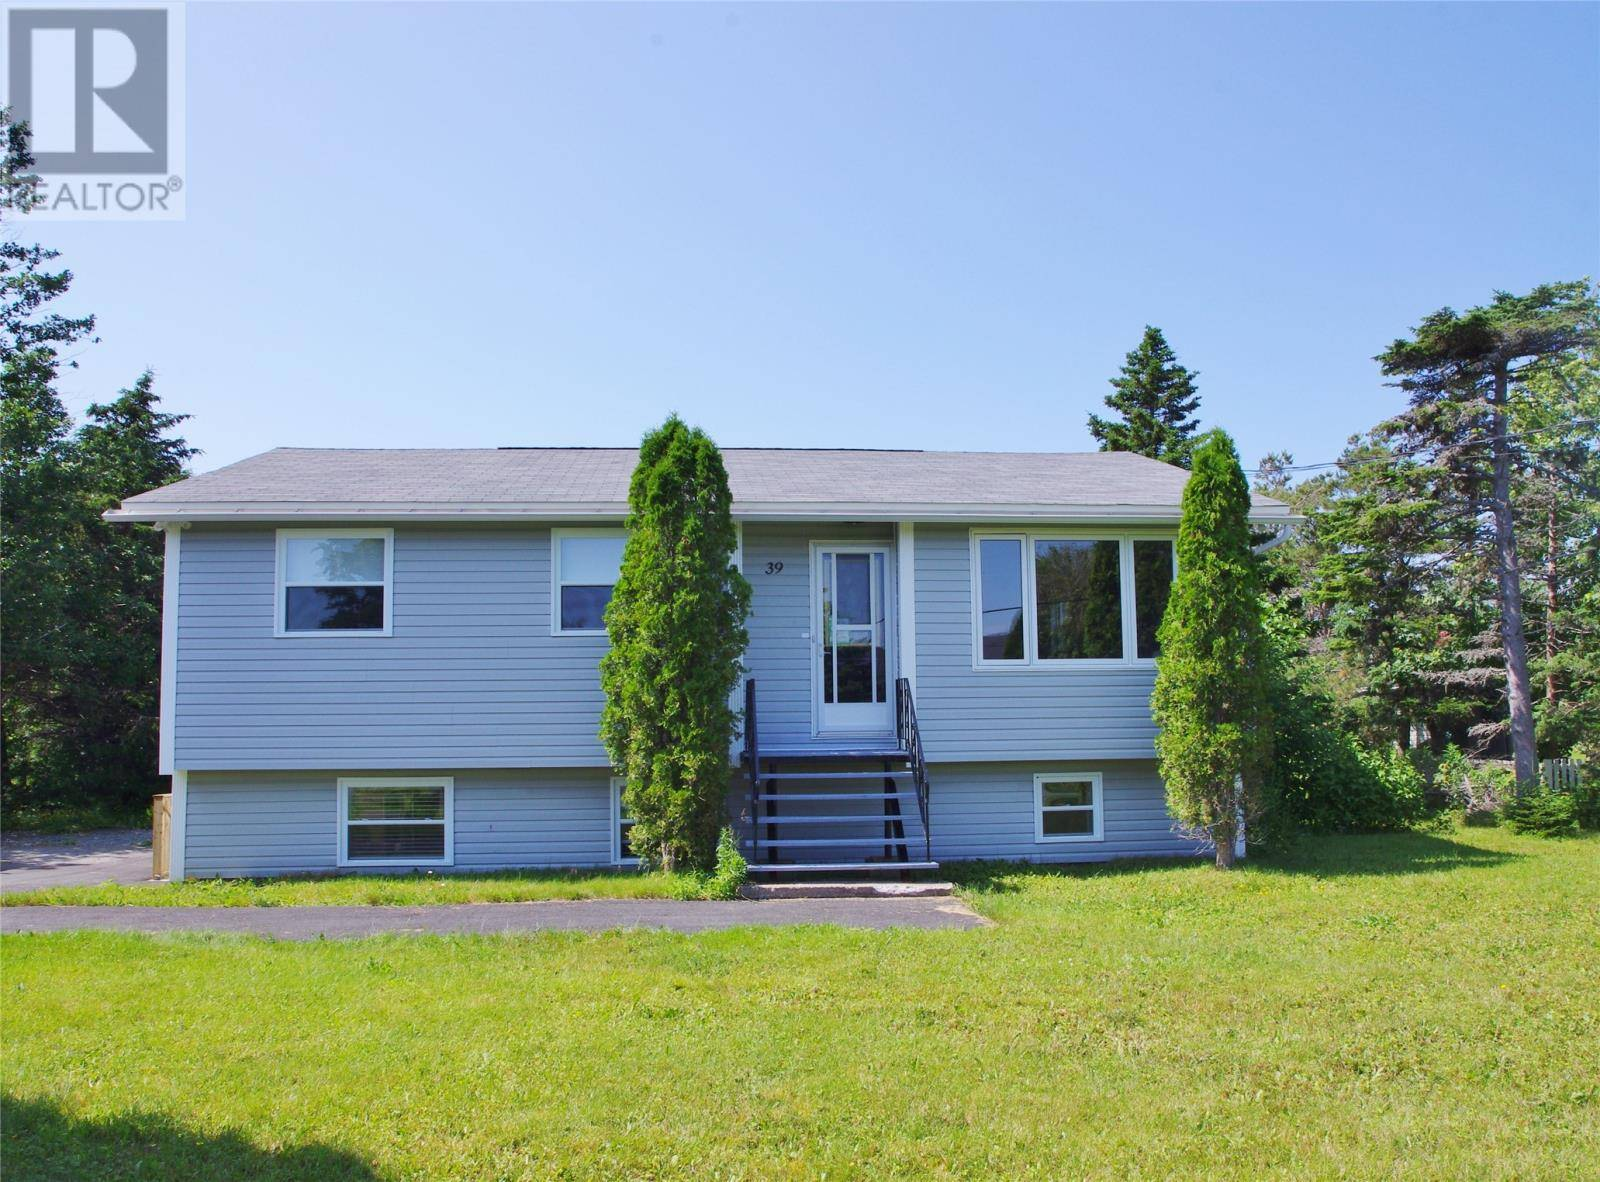 House for sale at 39 Desray Cres Paradise Newfoundland - MLS: 1200127